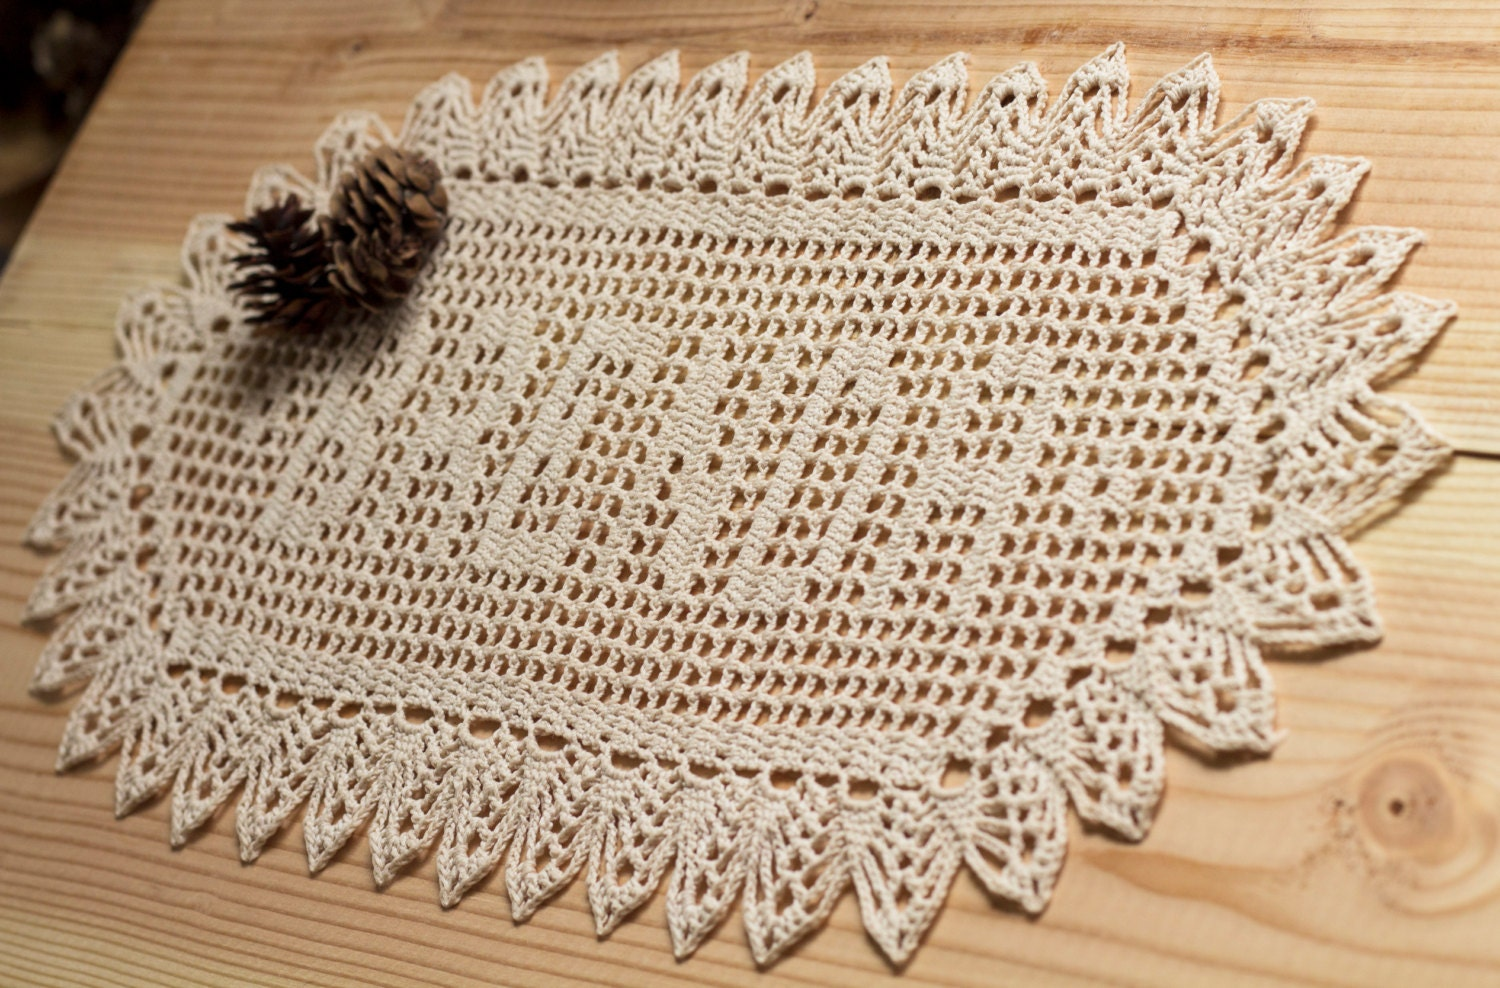 Crochet Wedding Gift: Crochet Name Doily Crochet Doilies Filet Crochet Unique